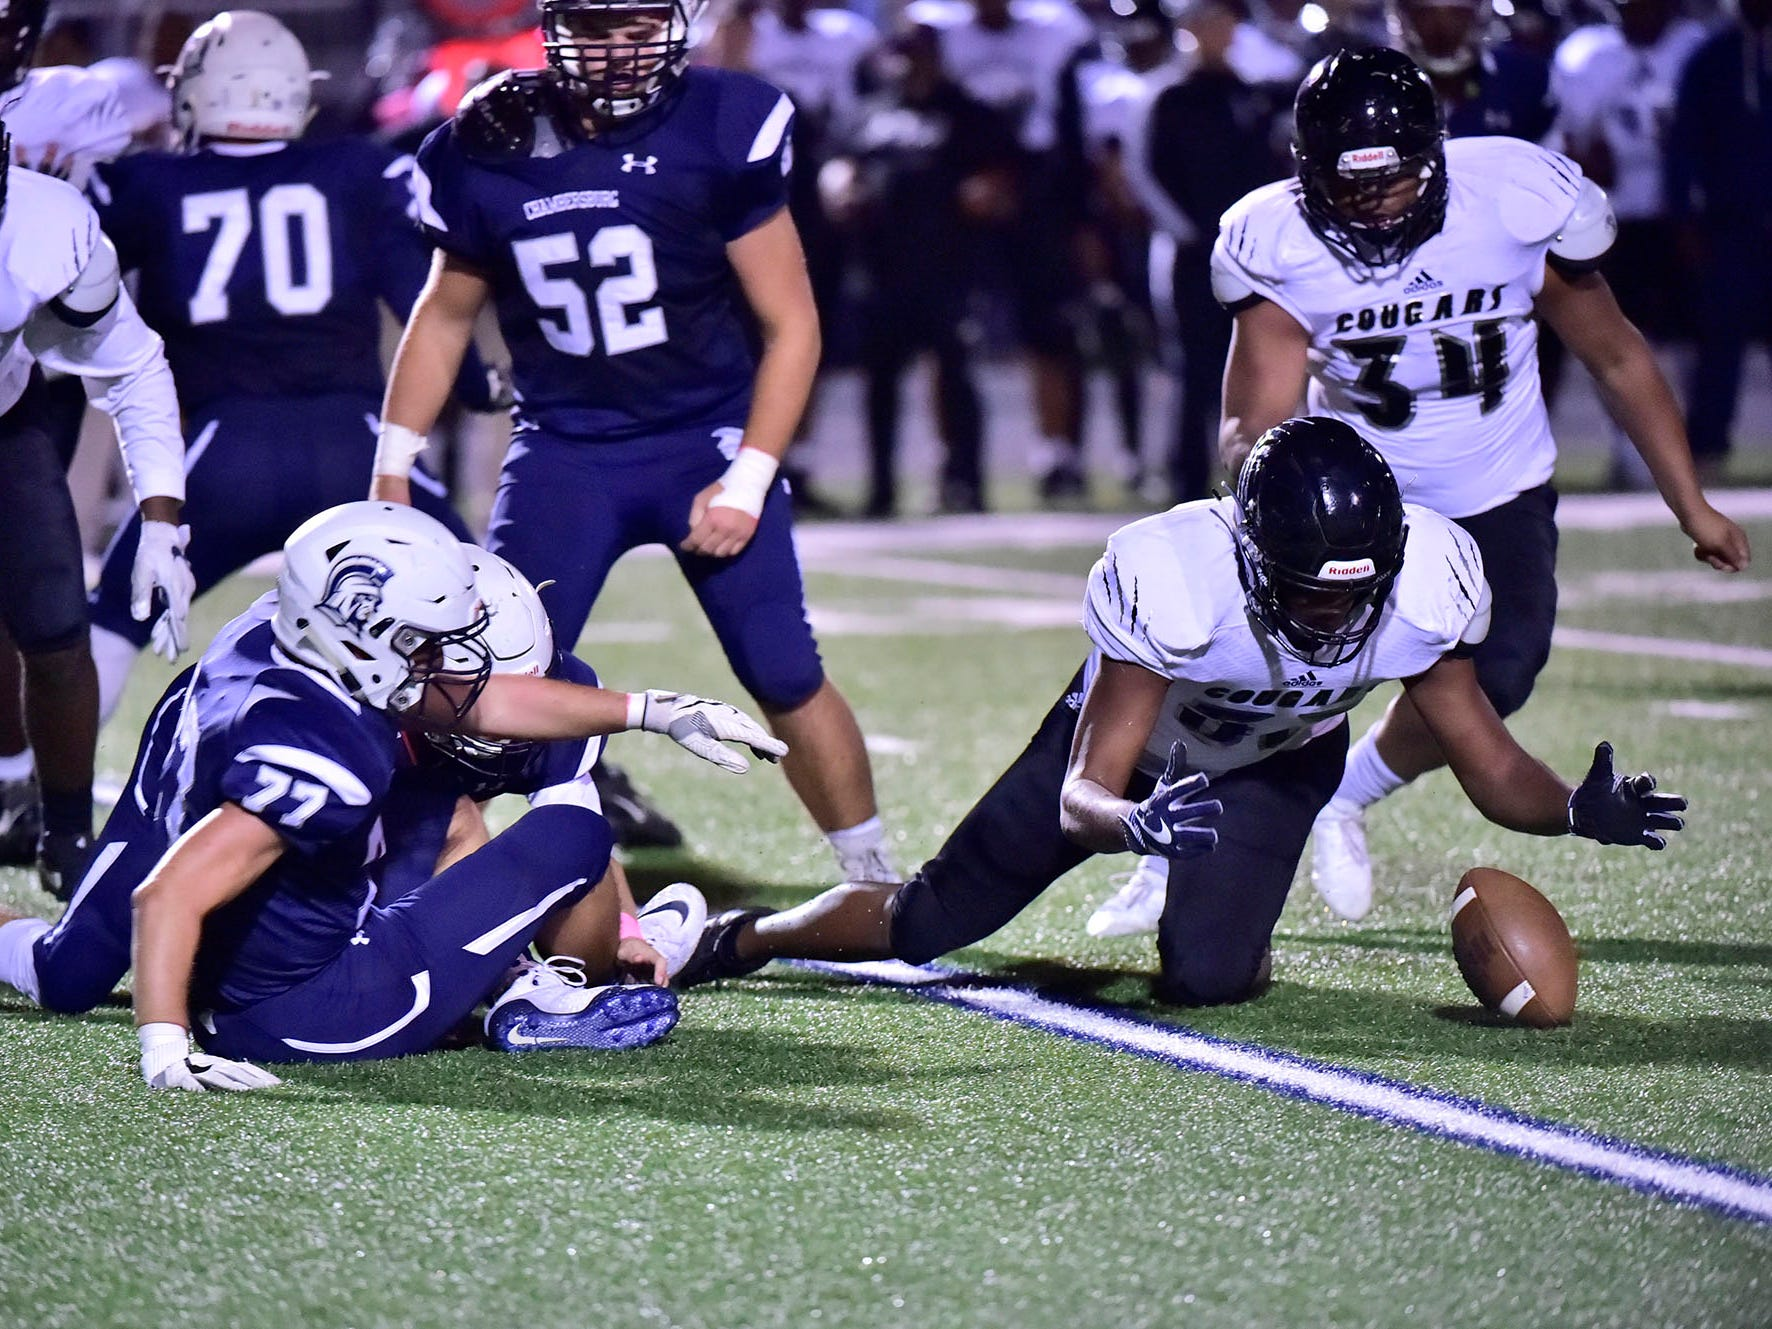 Harrisburg's Tony Patterson, right,  recovers a fumble. Chambersburg dropped a 28-13 game against Harrisburg in PIAA football on Friday, Oct. 12, 2018.